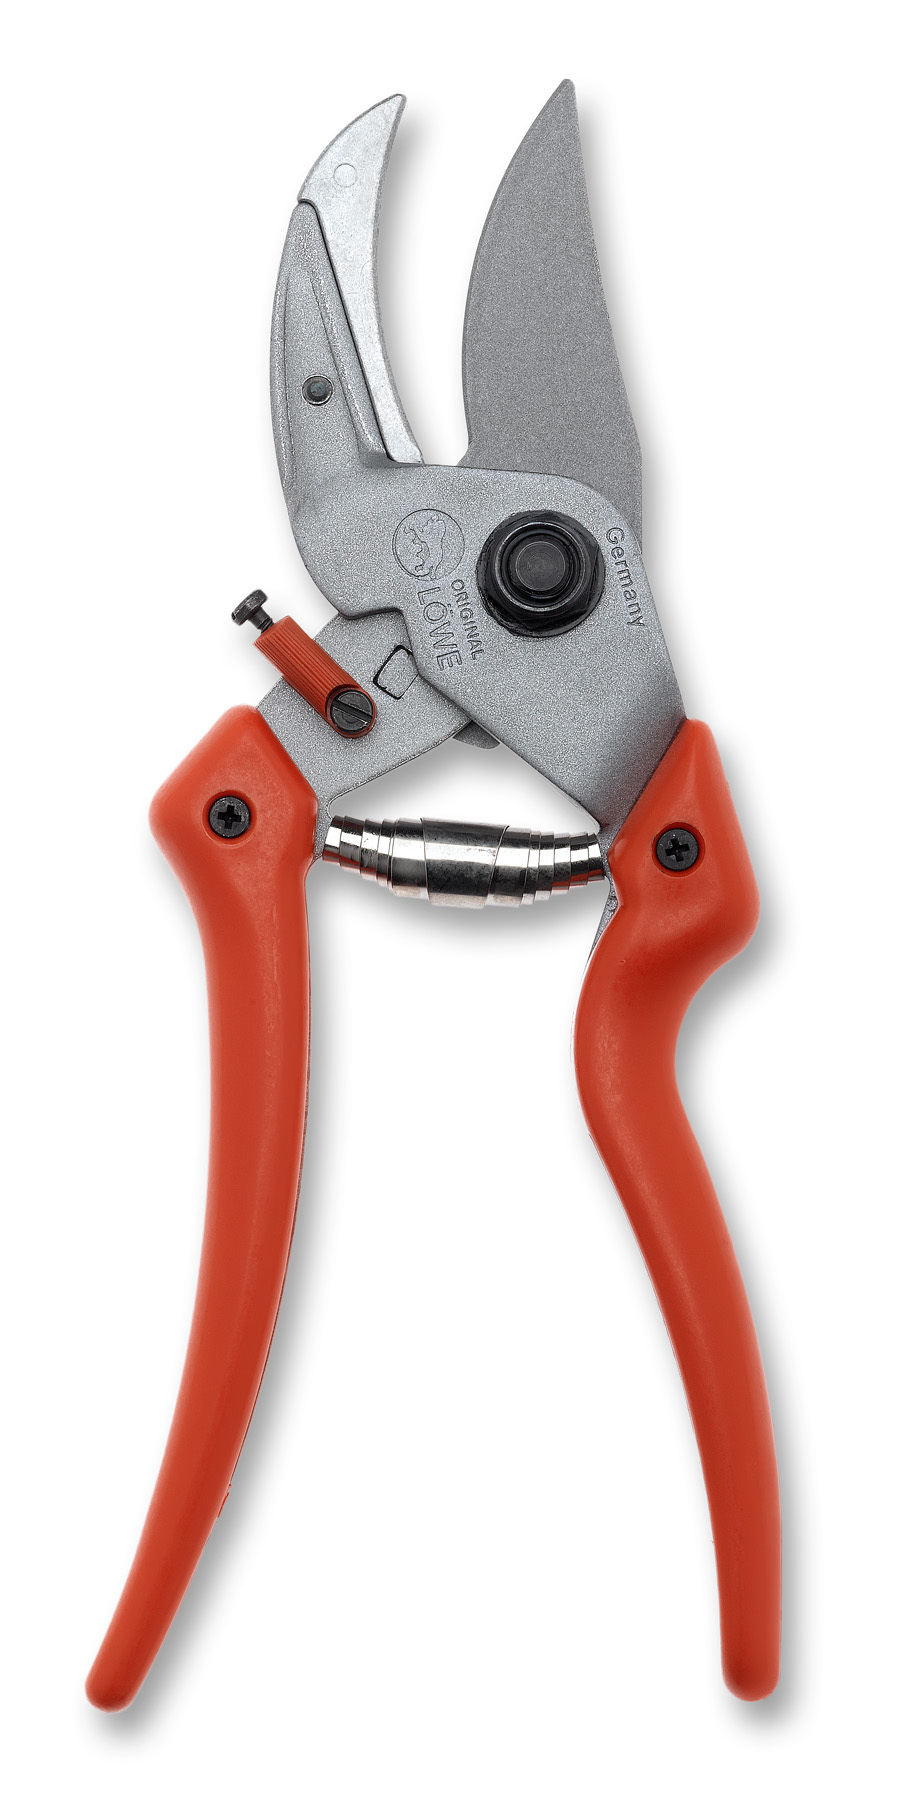 LÖWE 8.107 Anvil ergonomic pruner with curved blade LO-8.107